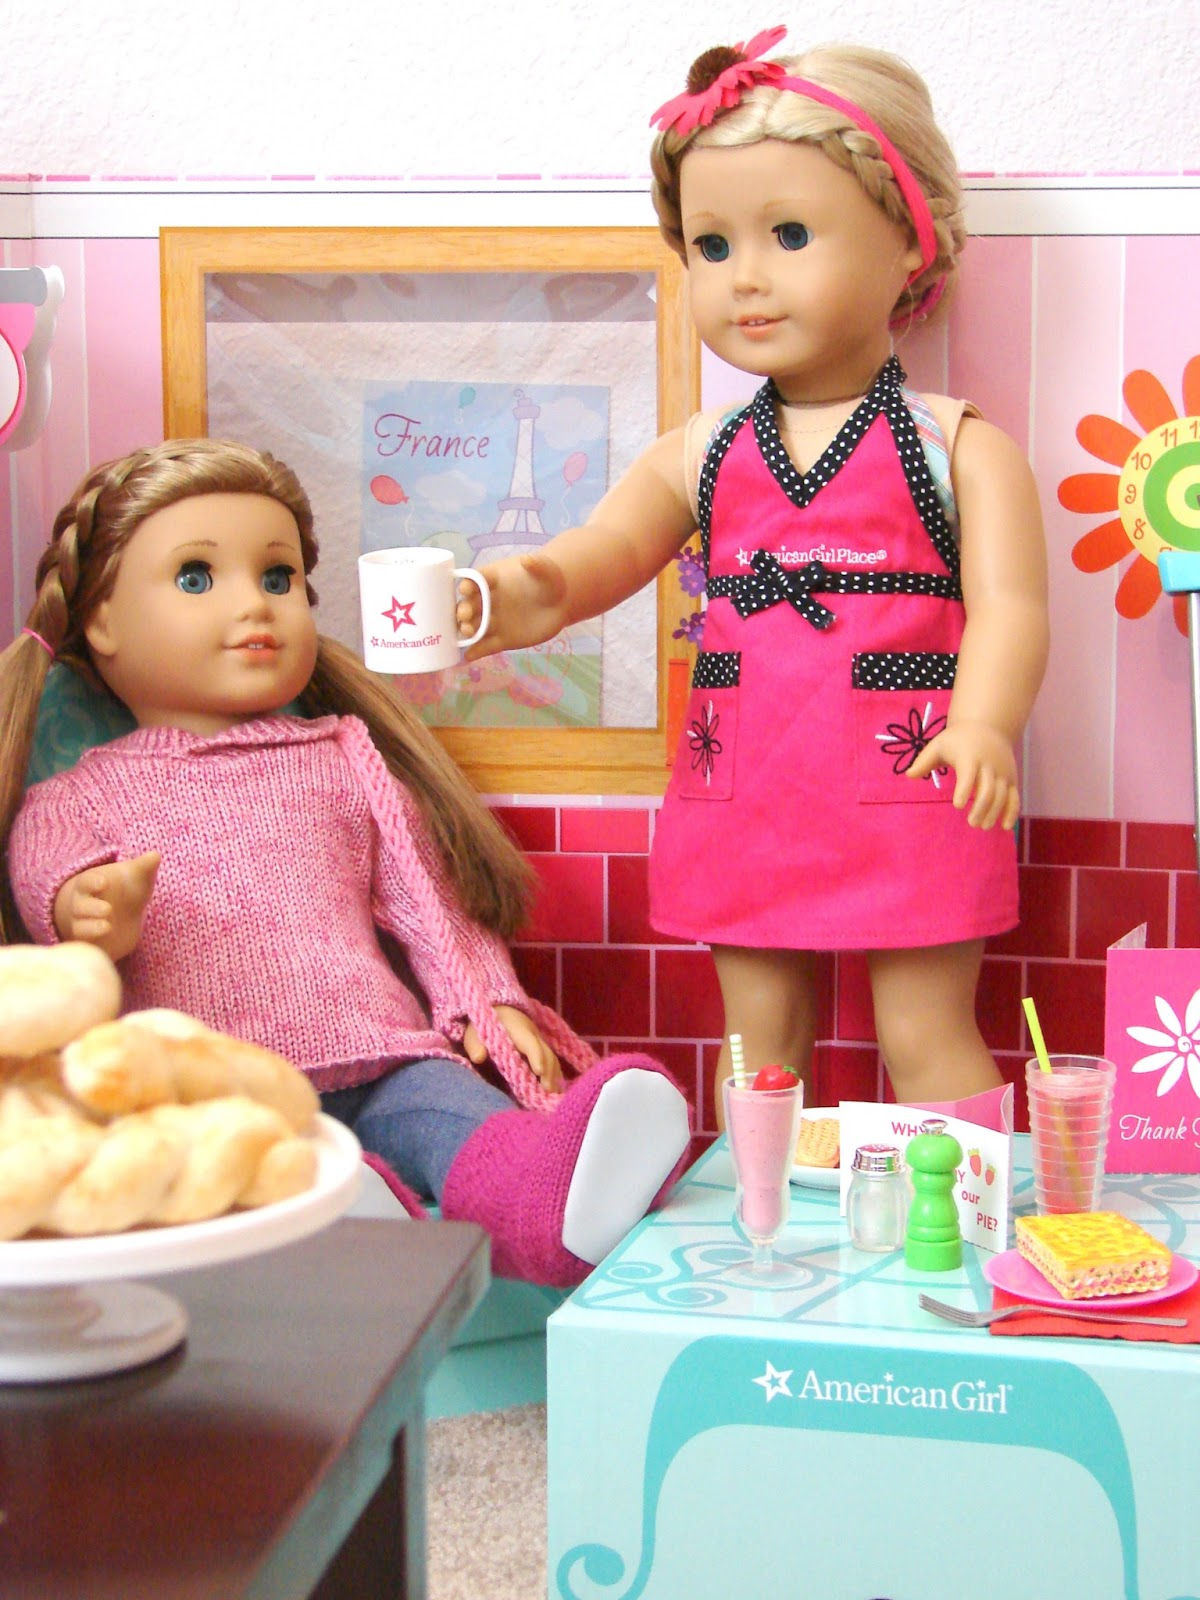 american girl doll play product review american girl deluxe diner set. Black Bedroom Furniture Sets. Home Design Ideas